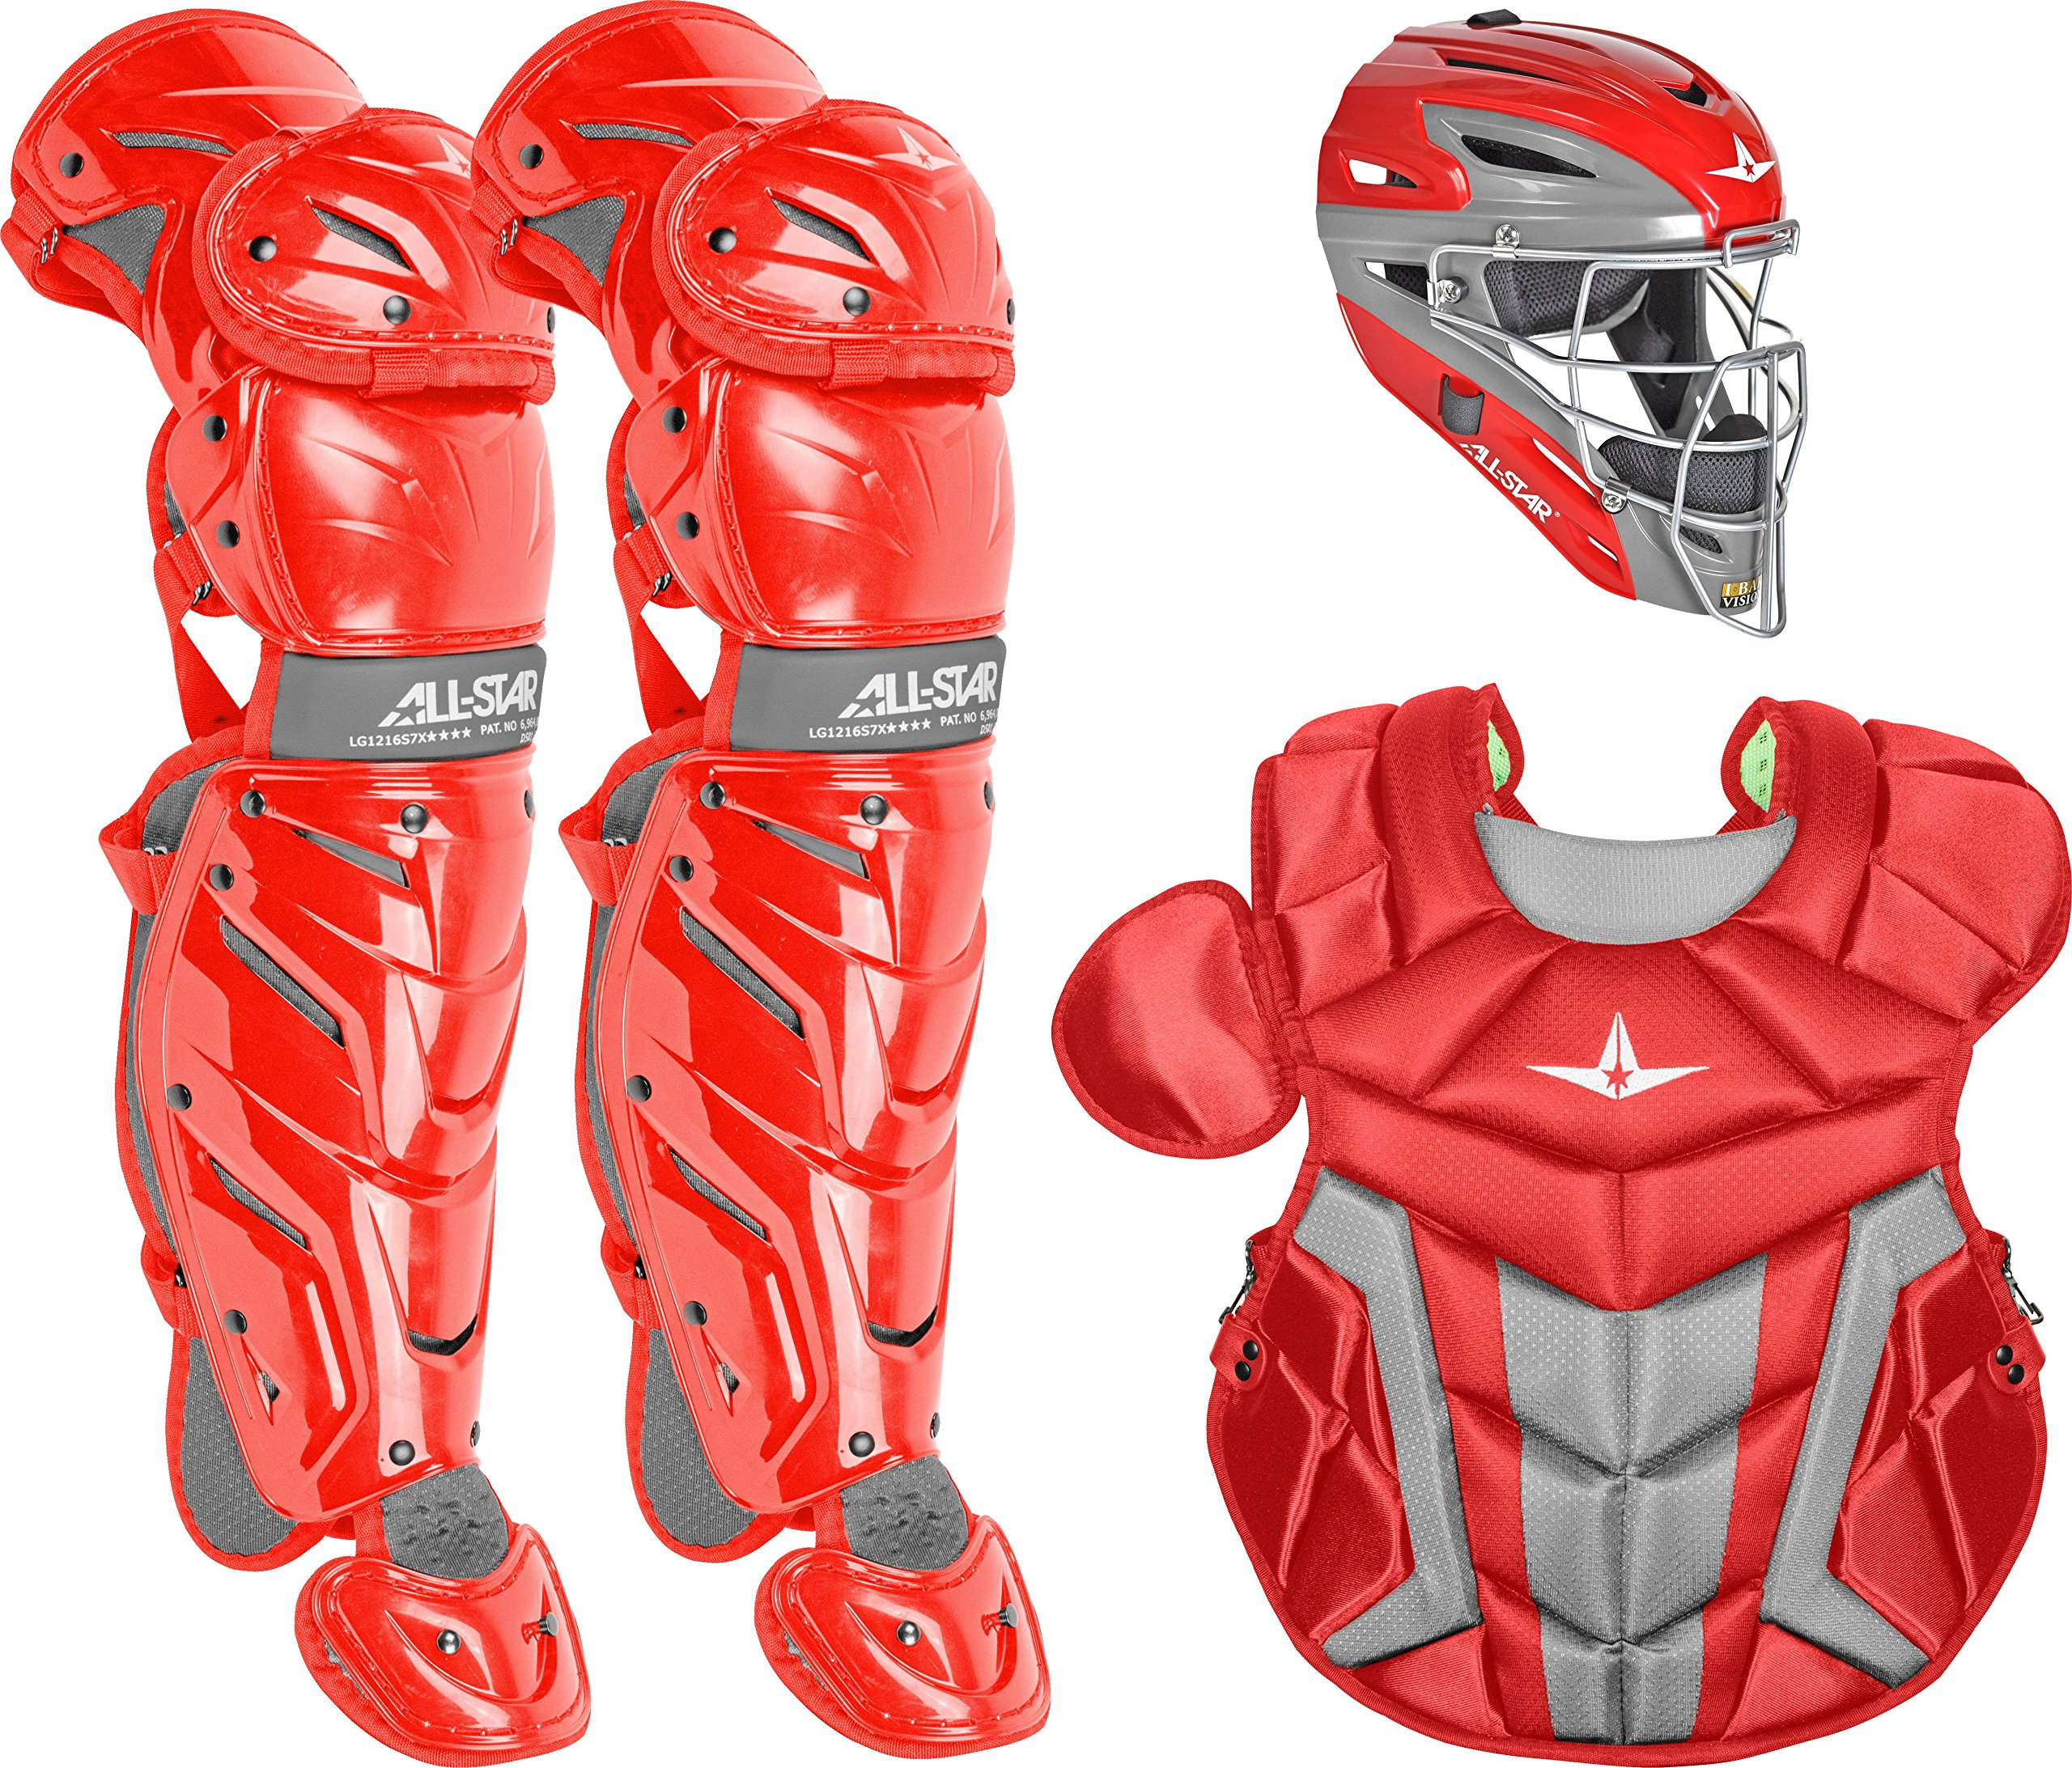 All-Star Youth System7 Axis Pro Catcher's Set (Ages 9-12) by All-Star